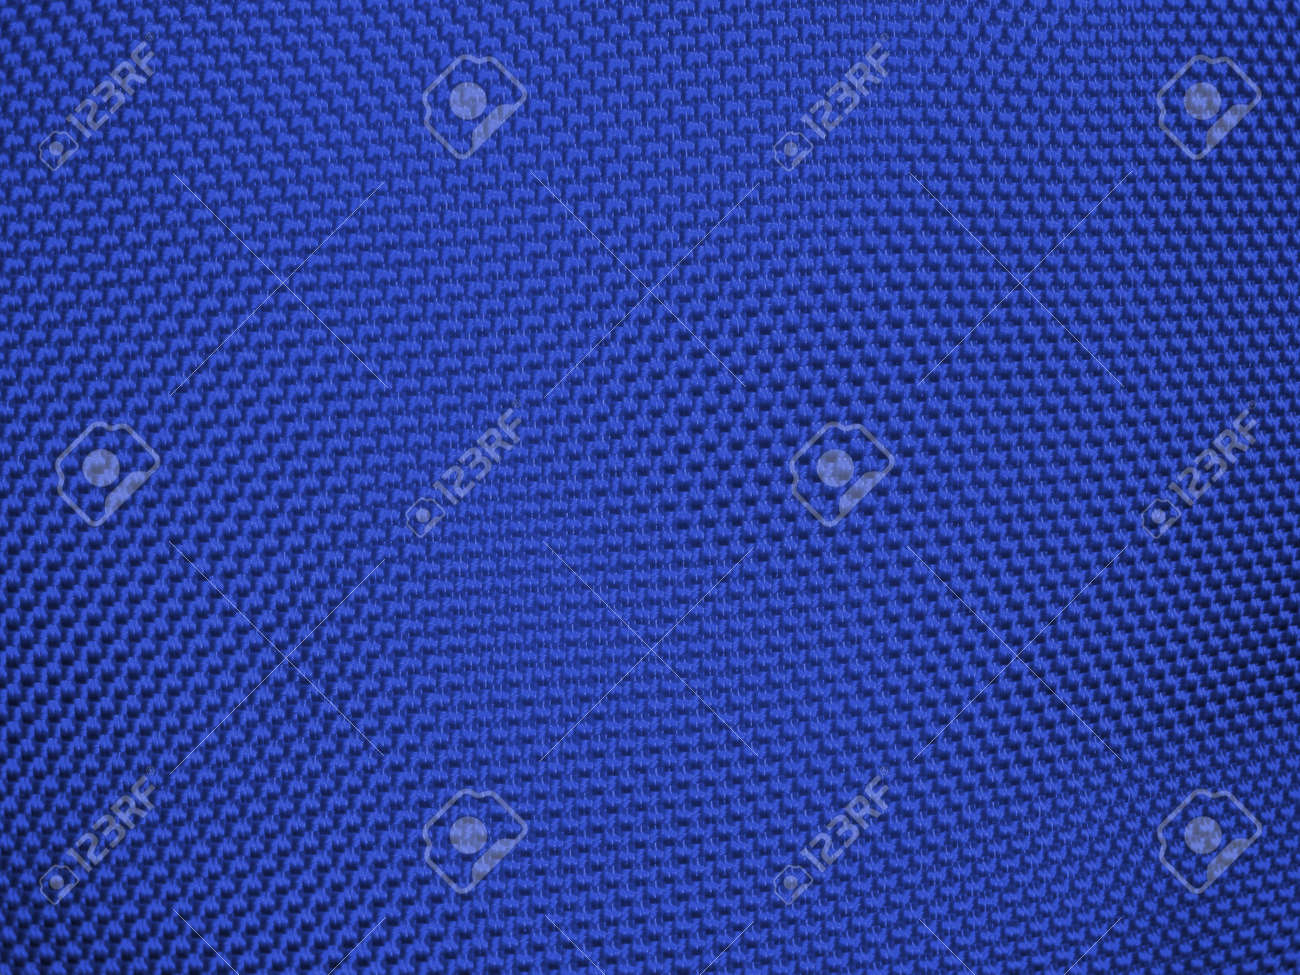 Knit woolen texture. Fabric blue background Stock Photo - 11032326